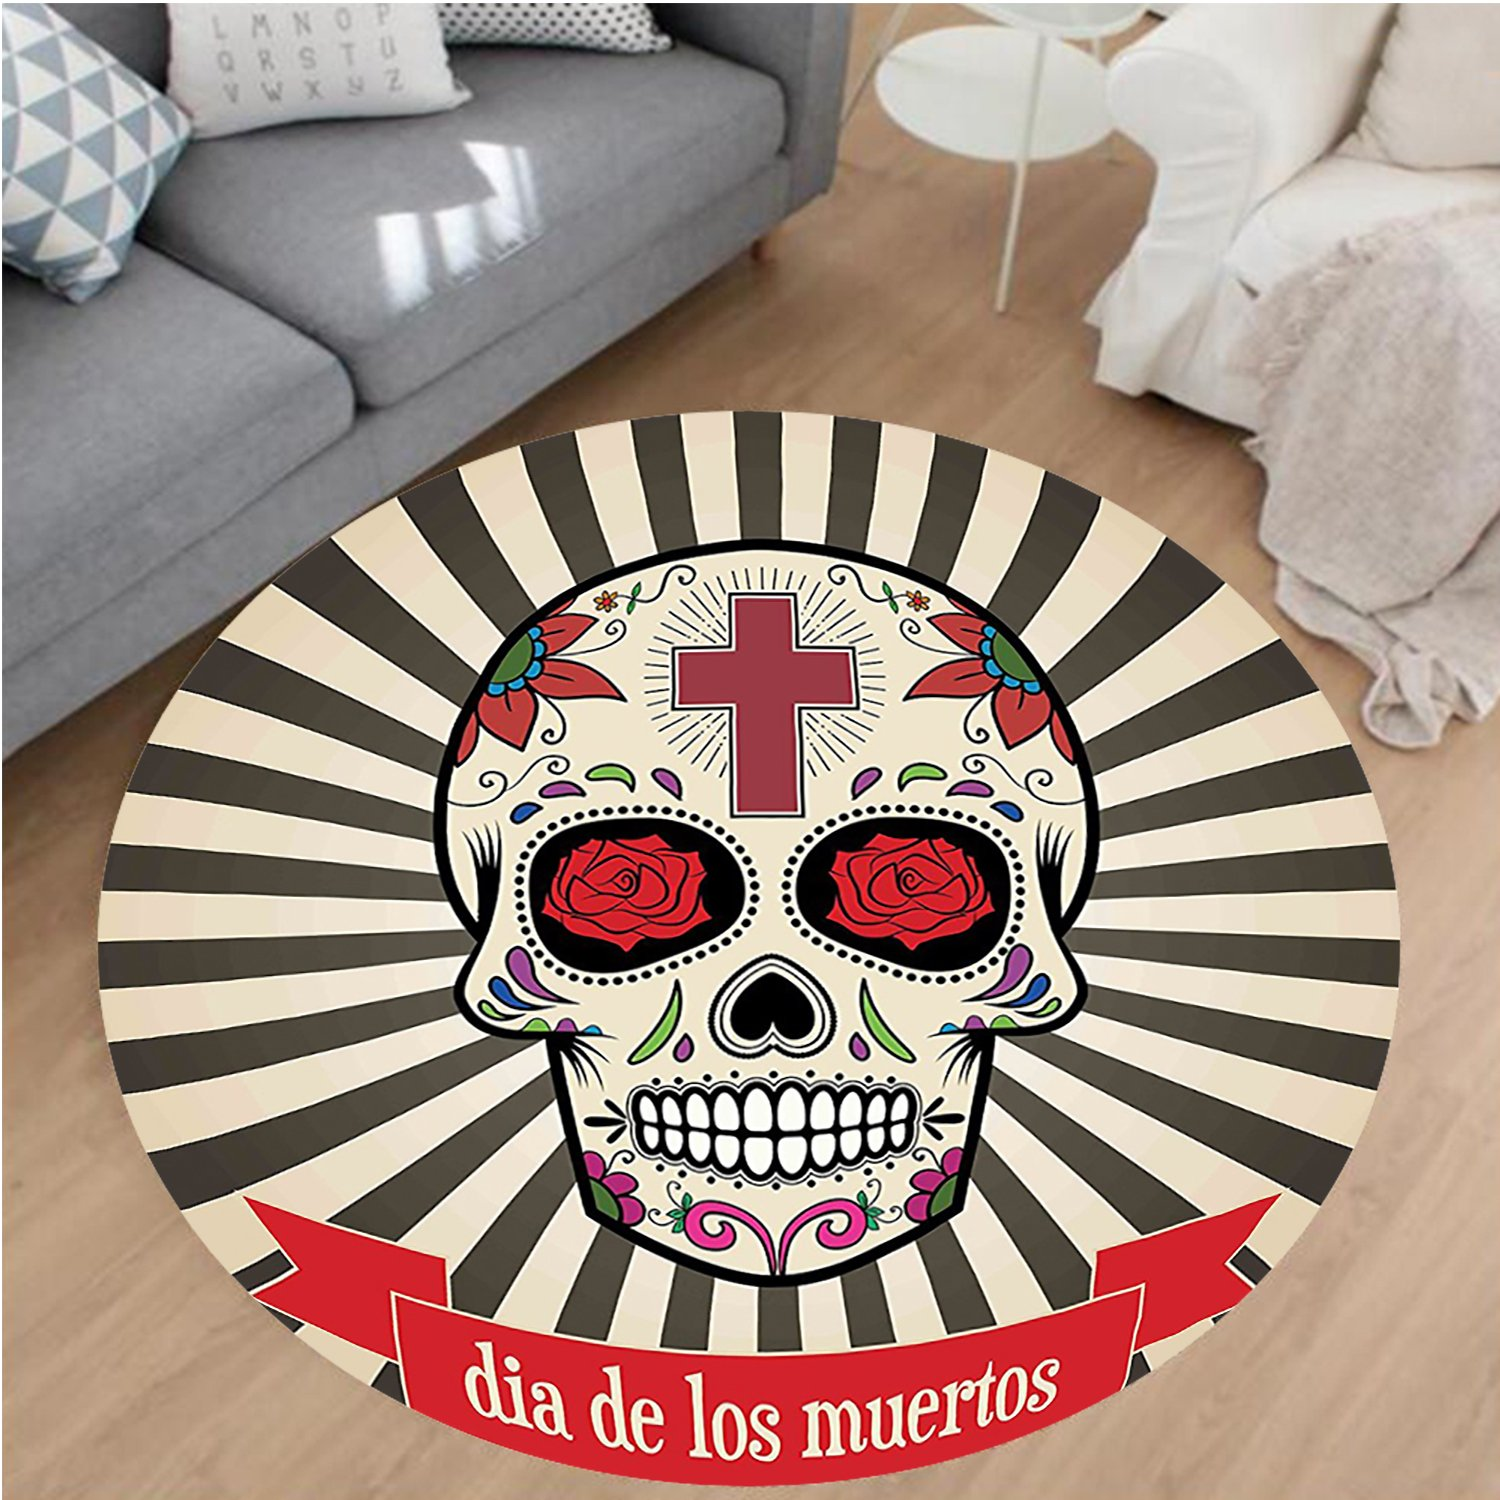 Nalahome Modern Flannel Microfiber Non-Slip Machine Washable Round Area Rug-Dead Decor Floral Sugar Skull with Christian Cross on Sunburst Pattern Grey Beige and Red area rugs Home Decor-Round 79'' by Nalahome